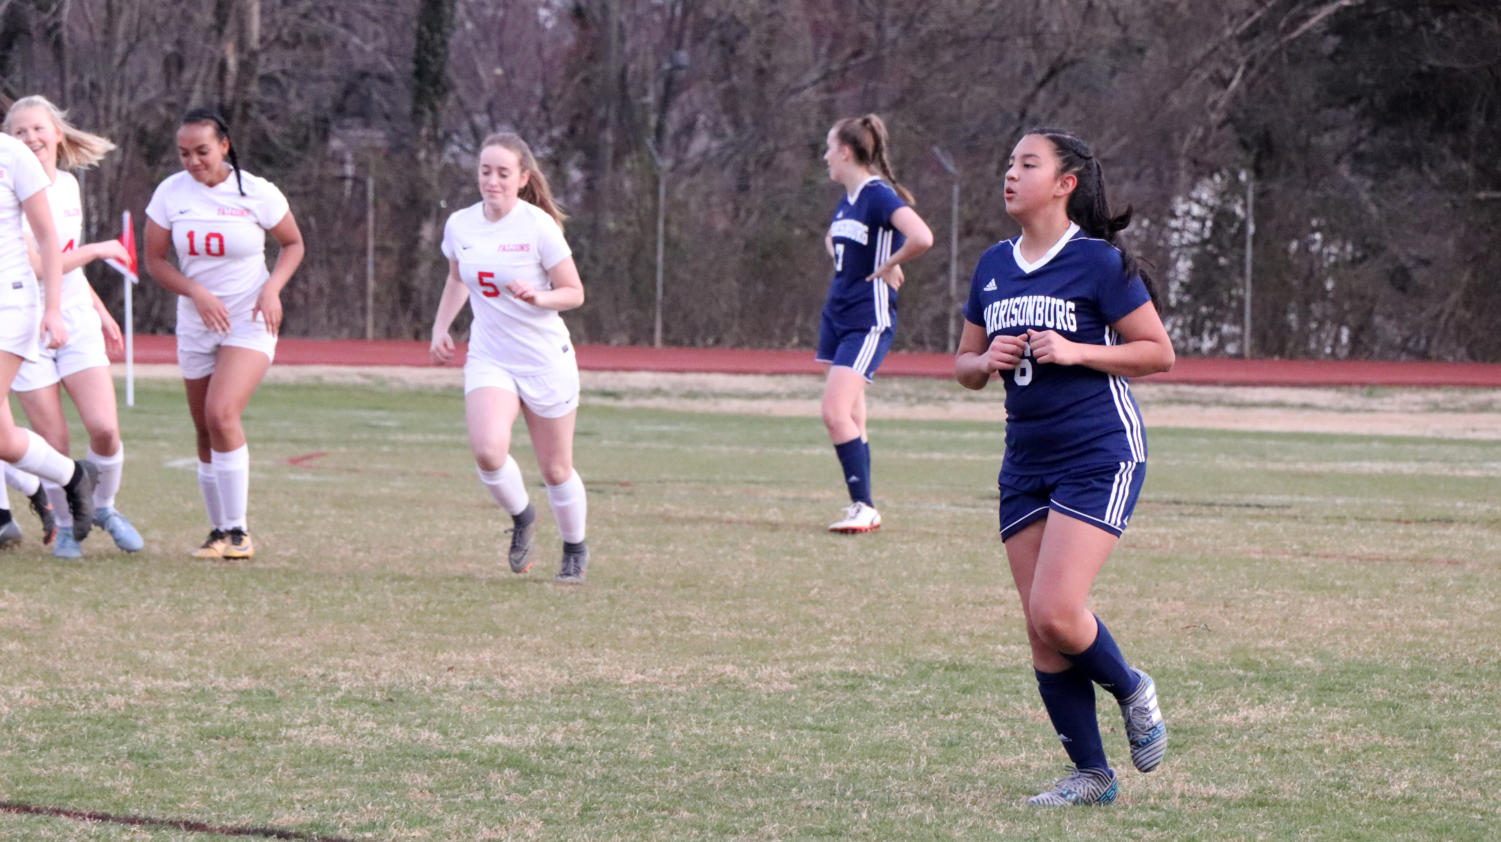 Freshman+Roselyn+Sanchez-Lanza+runs+back+up+the+field+after+the+Falcons+score+their+second+goal+of+the+game.+